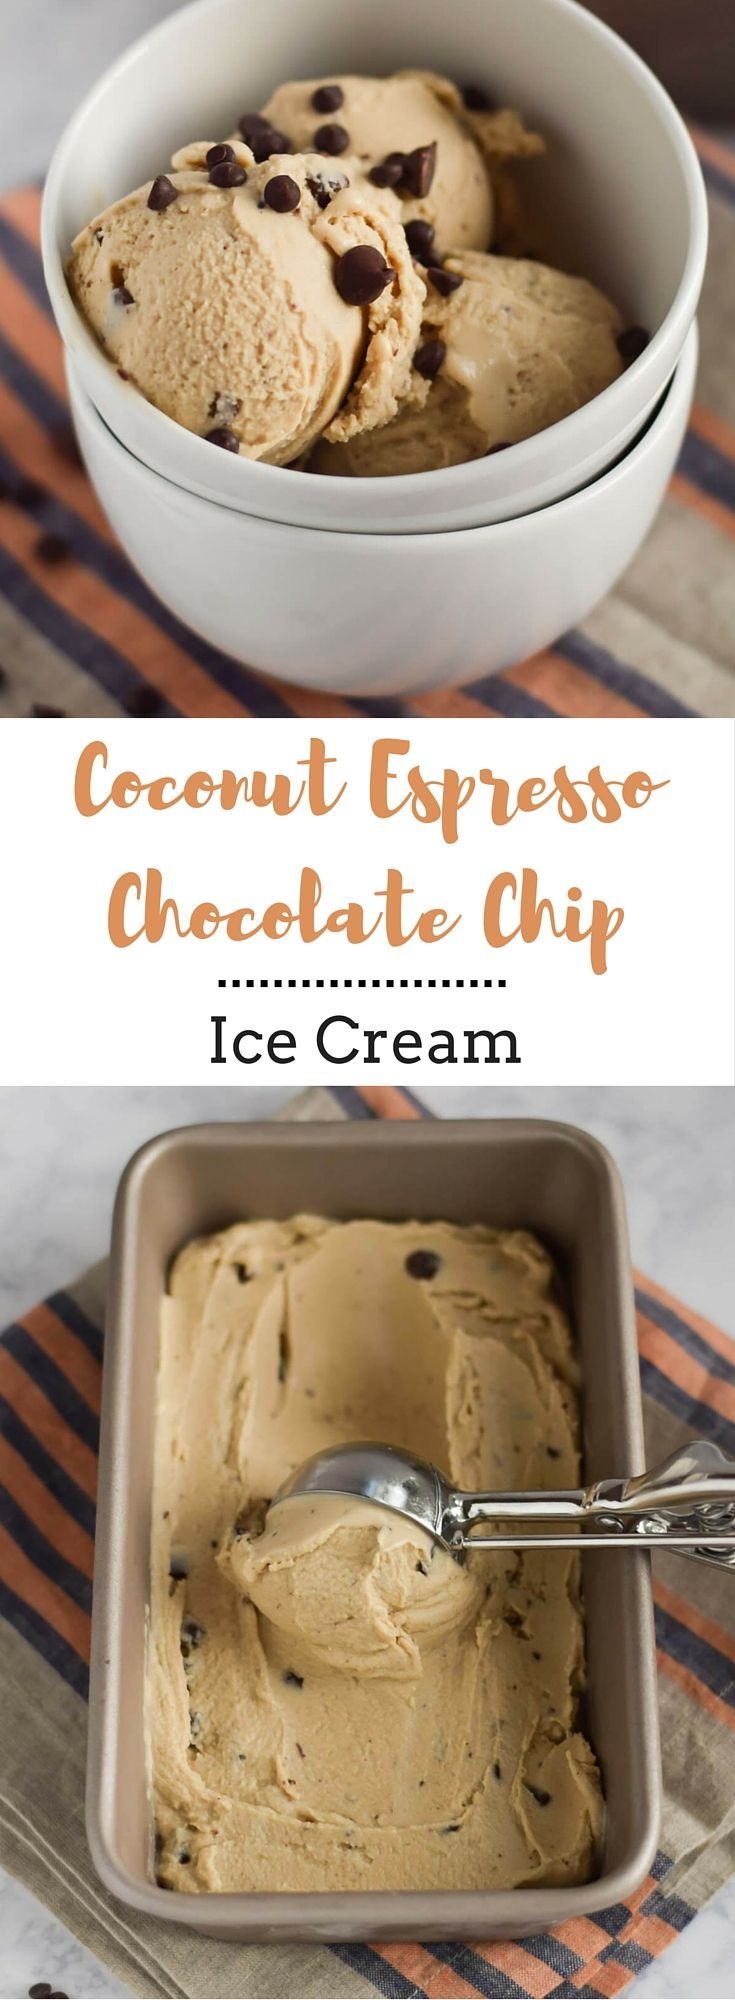 Coconut Espresso Chocolate Chip Ice Cream - Whether you are dairy free or not, you will love this Coconut Espresso Chocolate Chip Ice Cream. It�s thick, creamy and just the right amount of sweetness. You won�t believe how delicious it is with no cream a